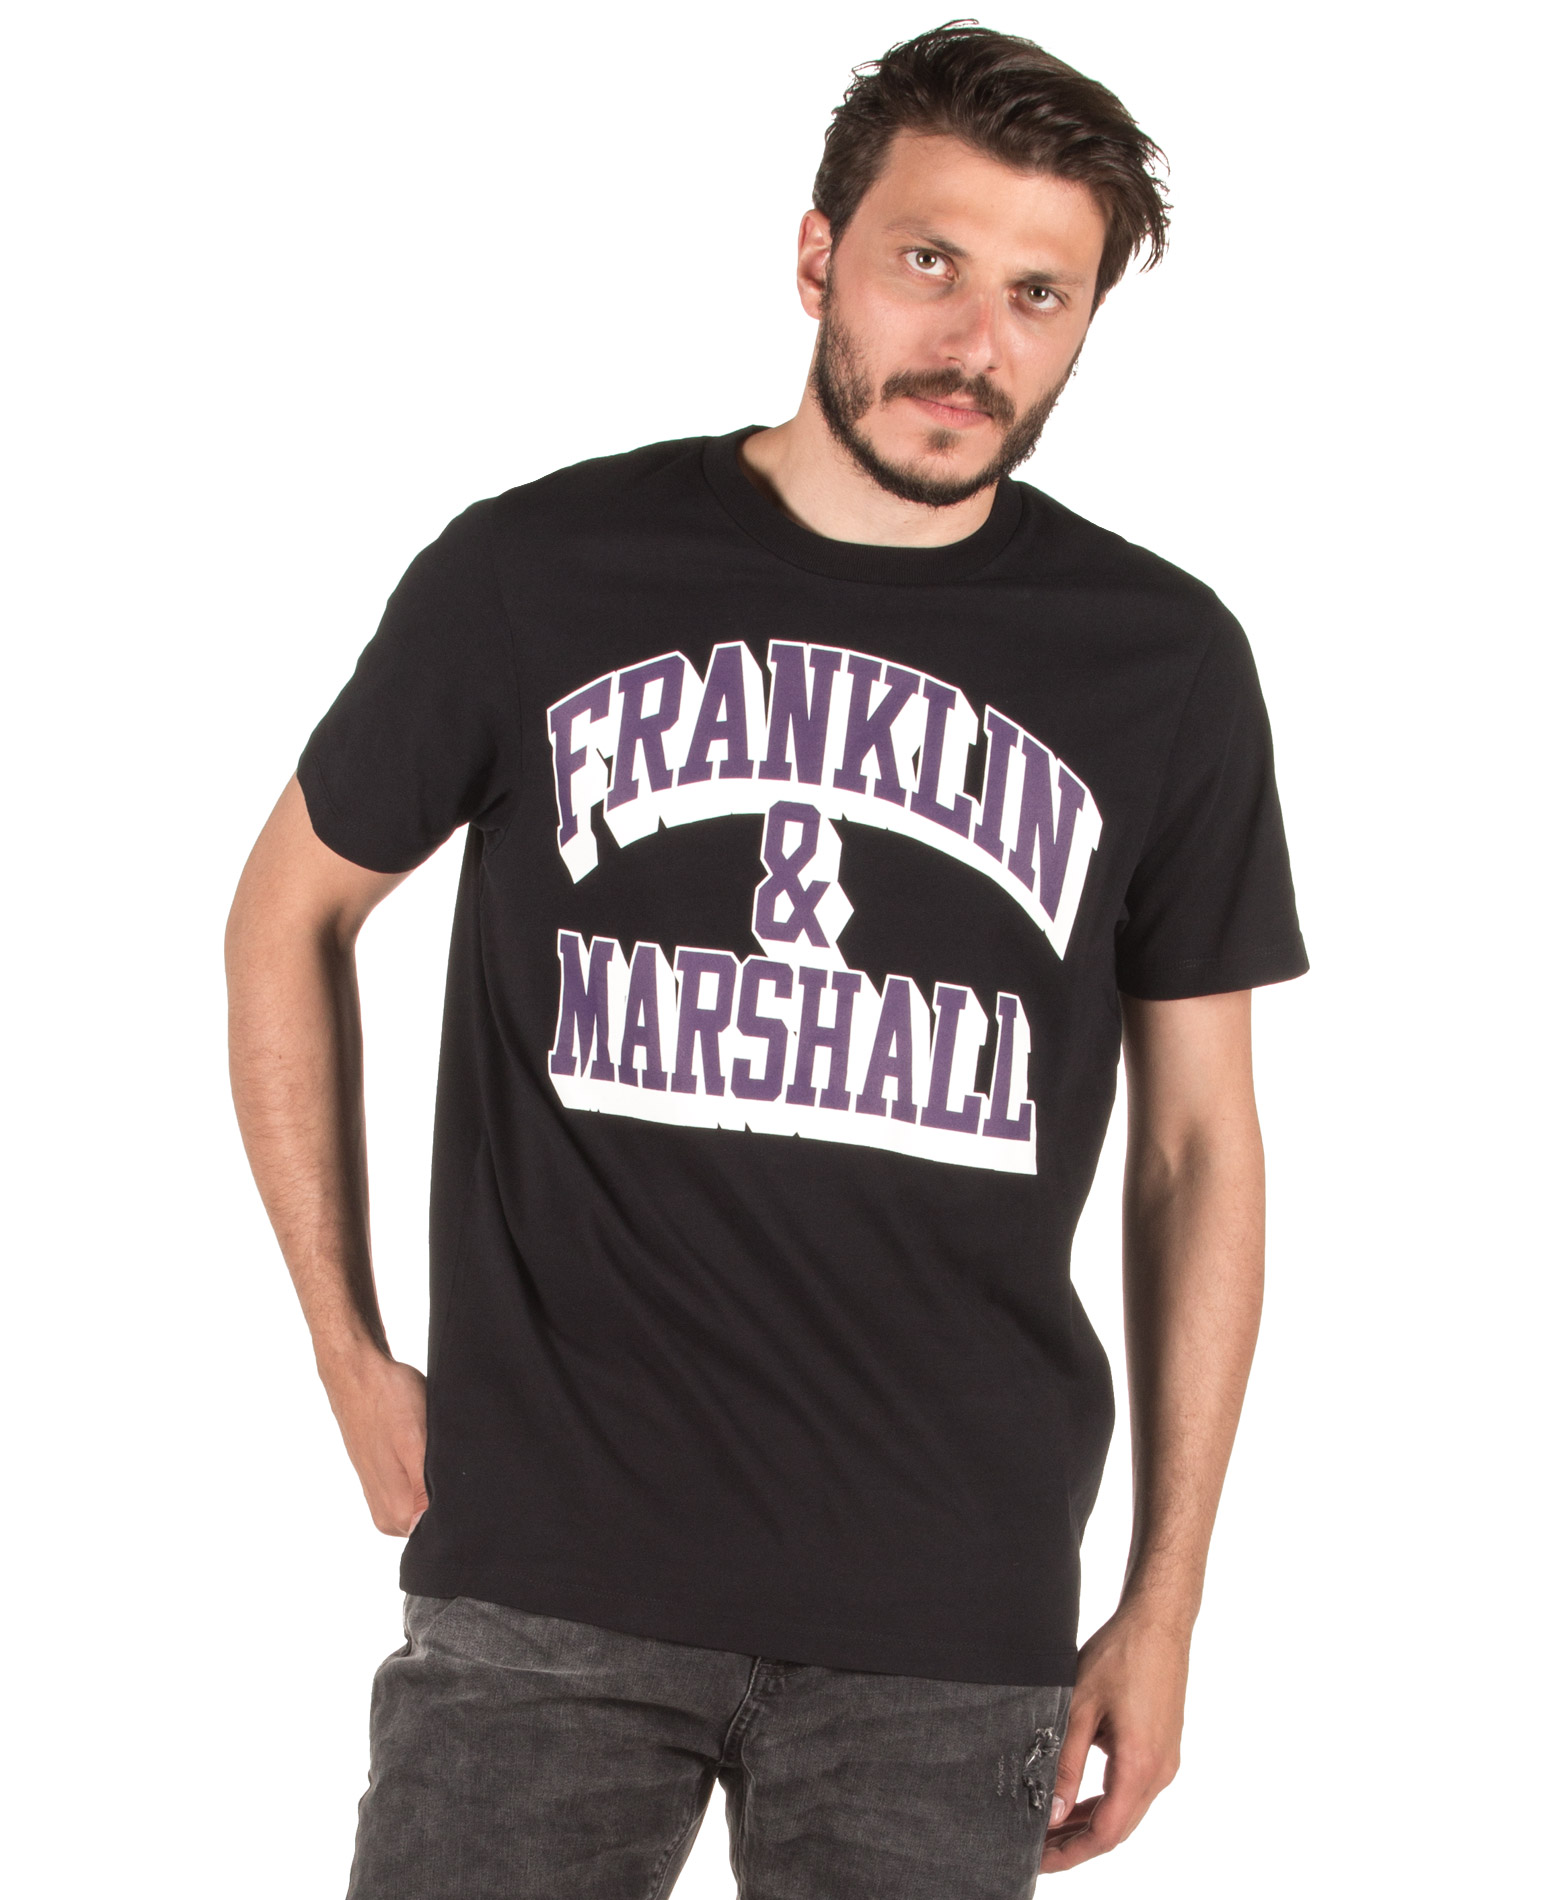 ΕΝΔΥΜΑΤΑ TShirt FRANKLIN MARSHALL TSMF362AM-0021 Μαύρο